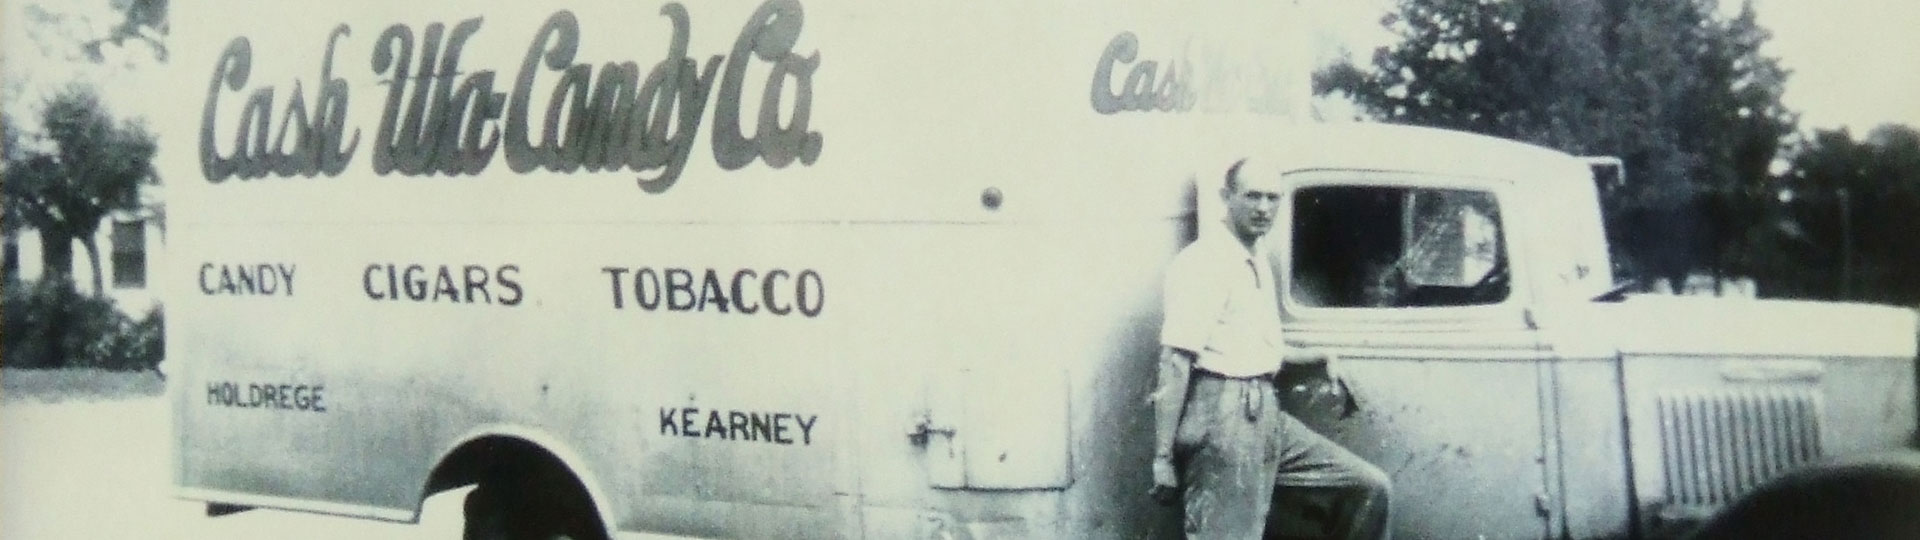 History of Cash-Wa Distributing, Kearney